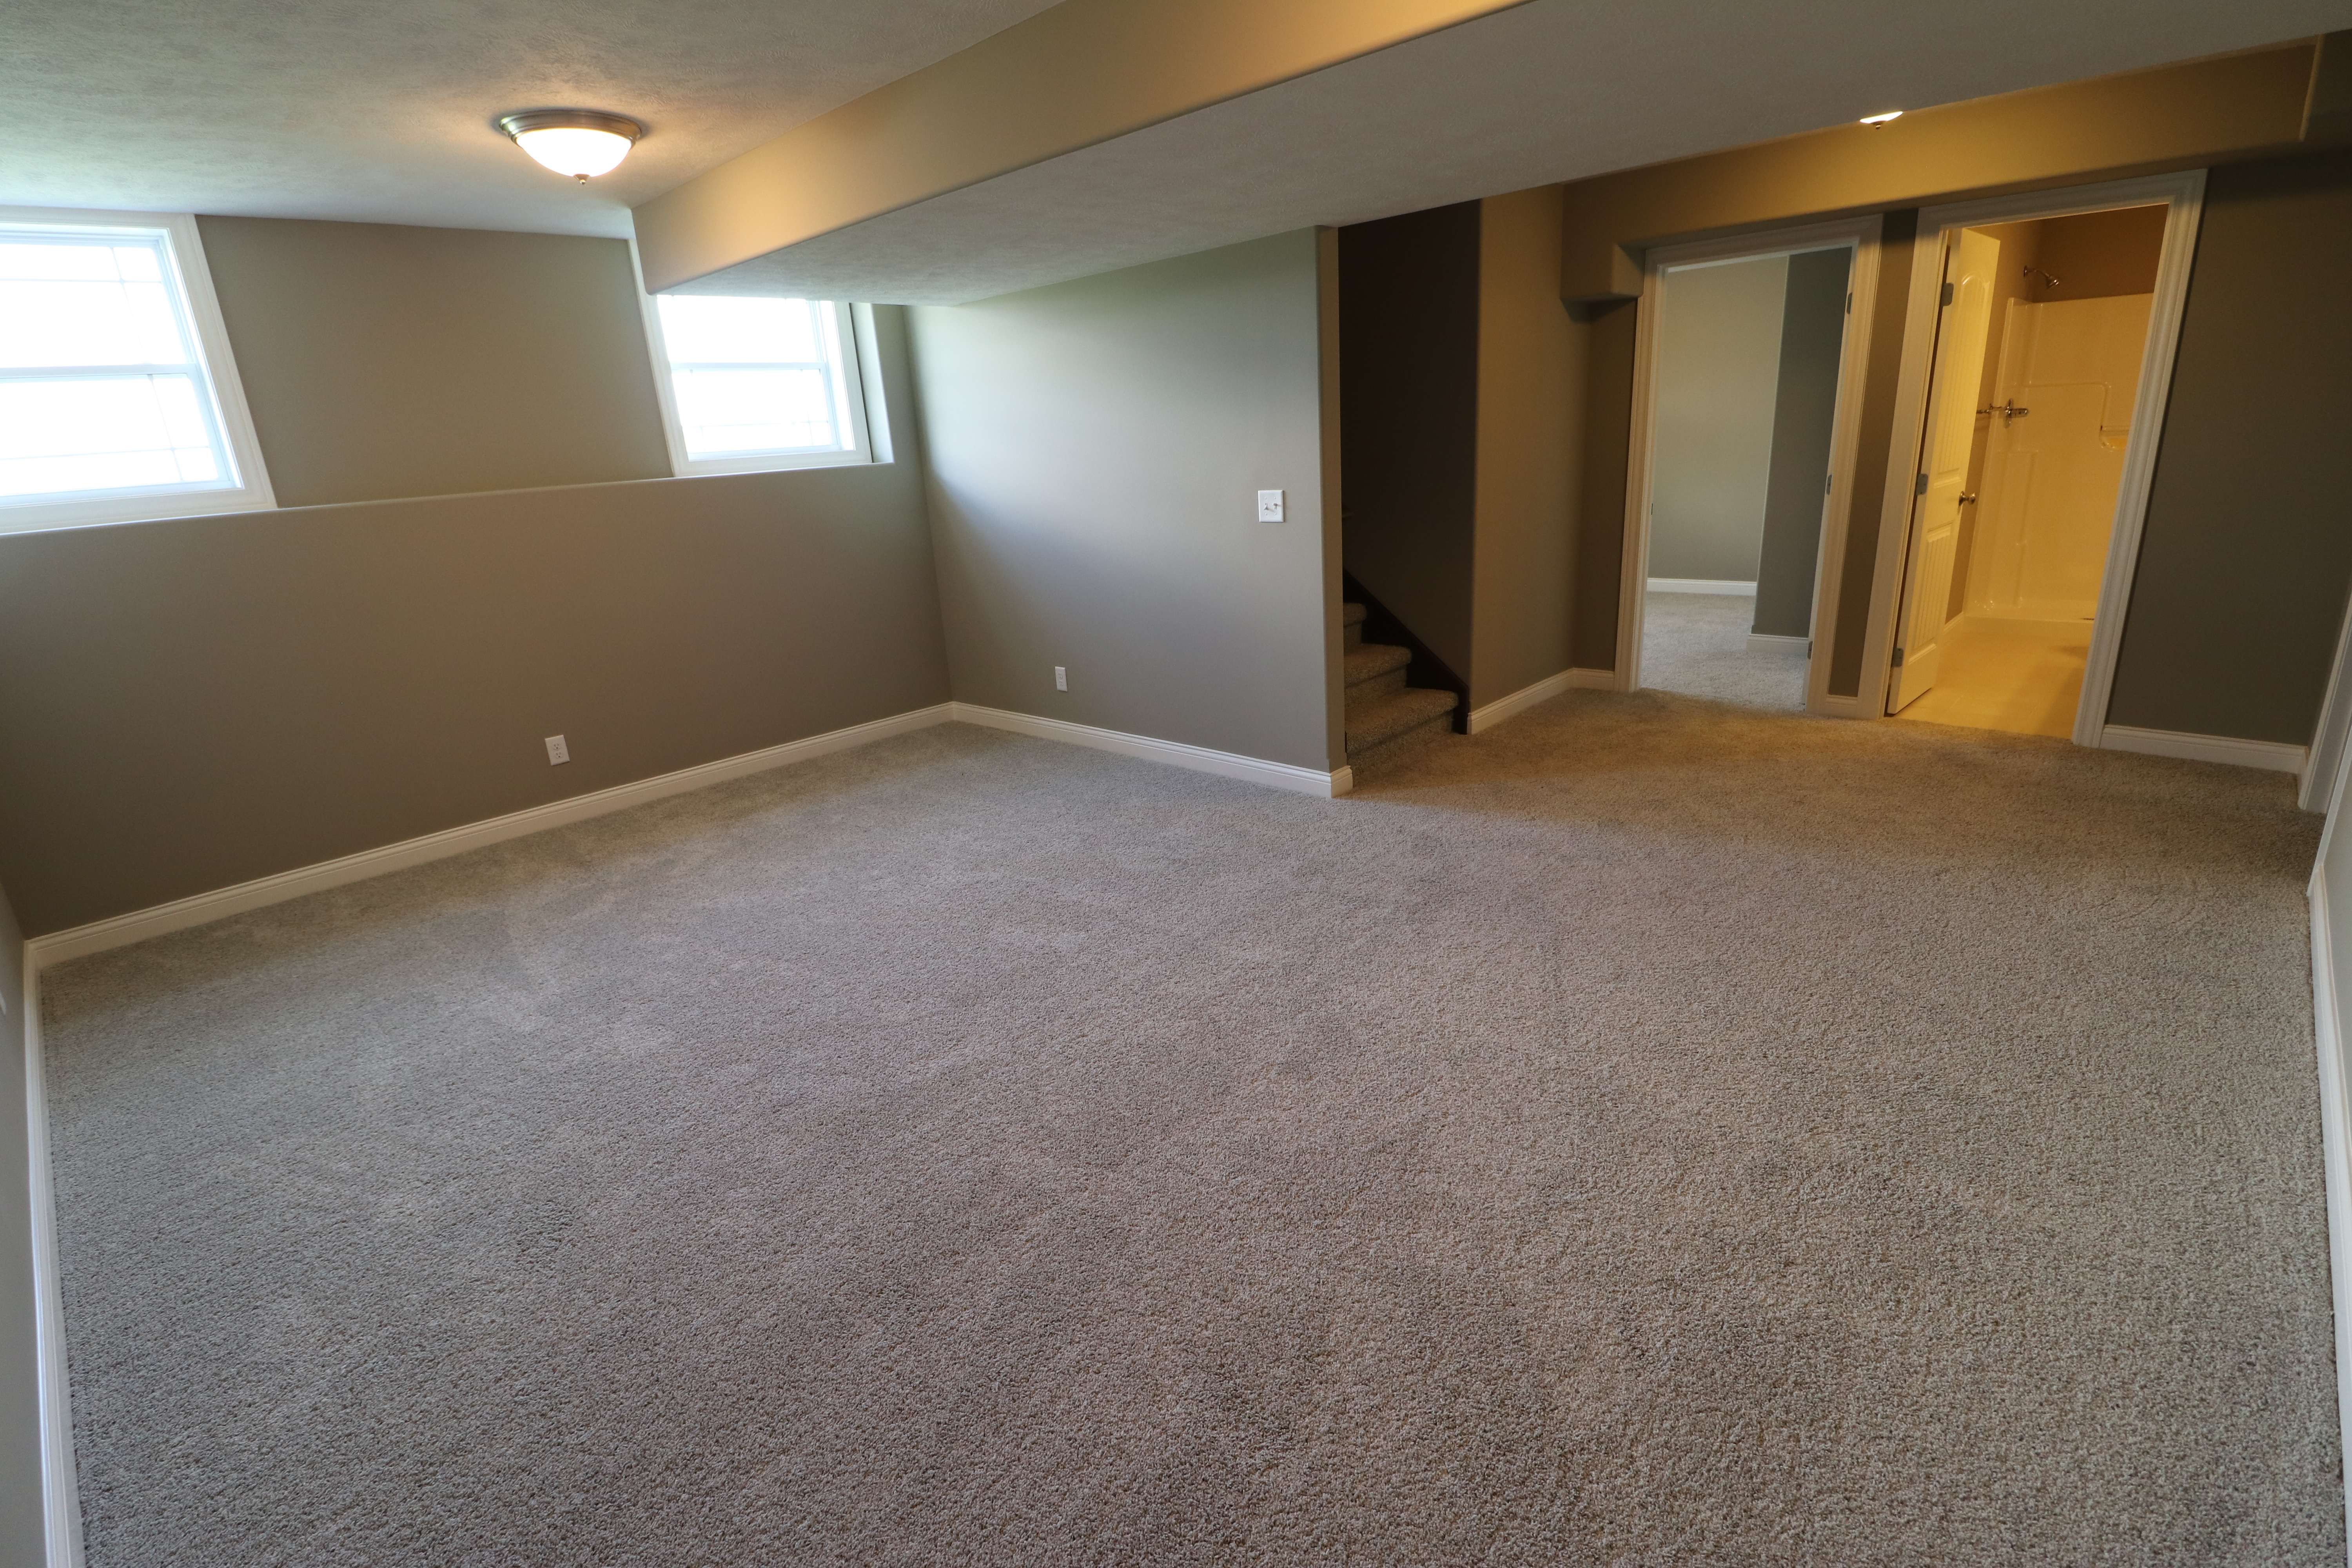 House for sale in the Dunlap peoria area finished basement with bathroom